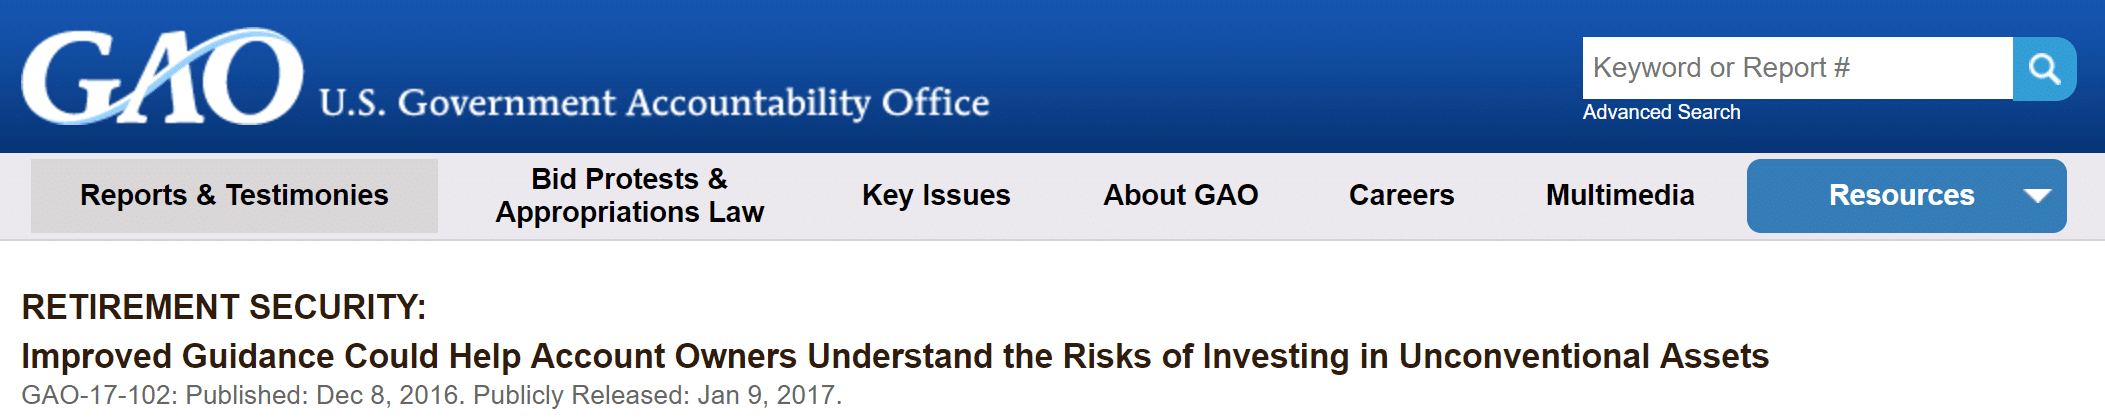 GAO Report 17-102 Retirement Security Self-Directed IRA's